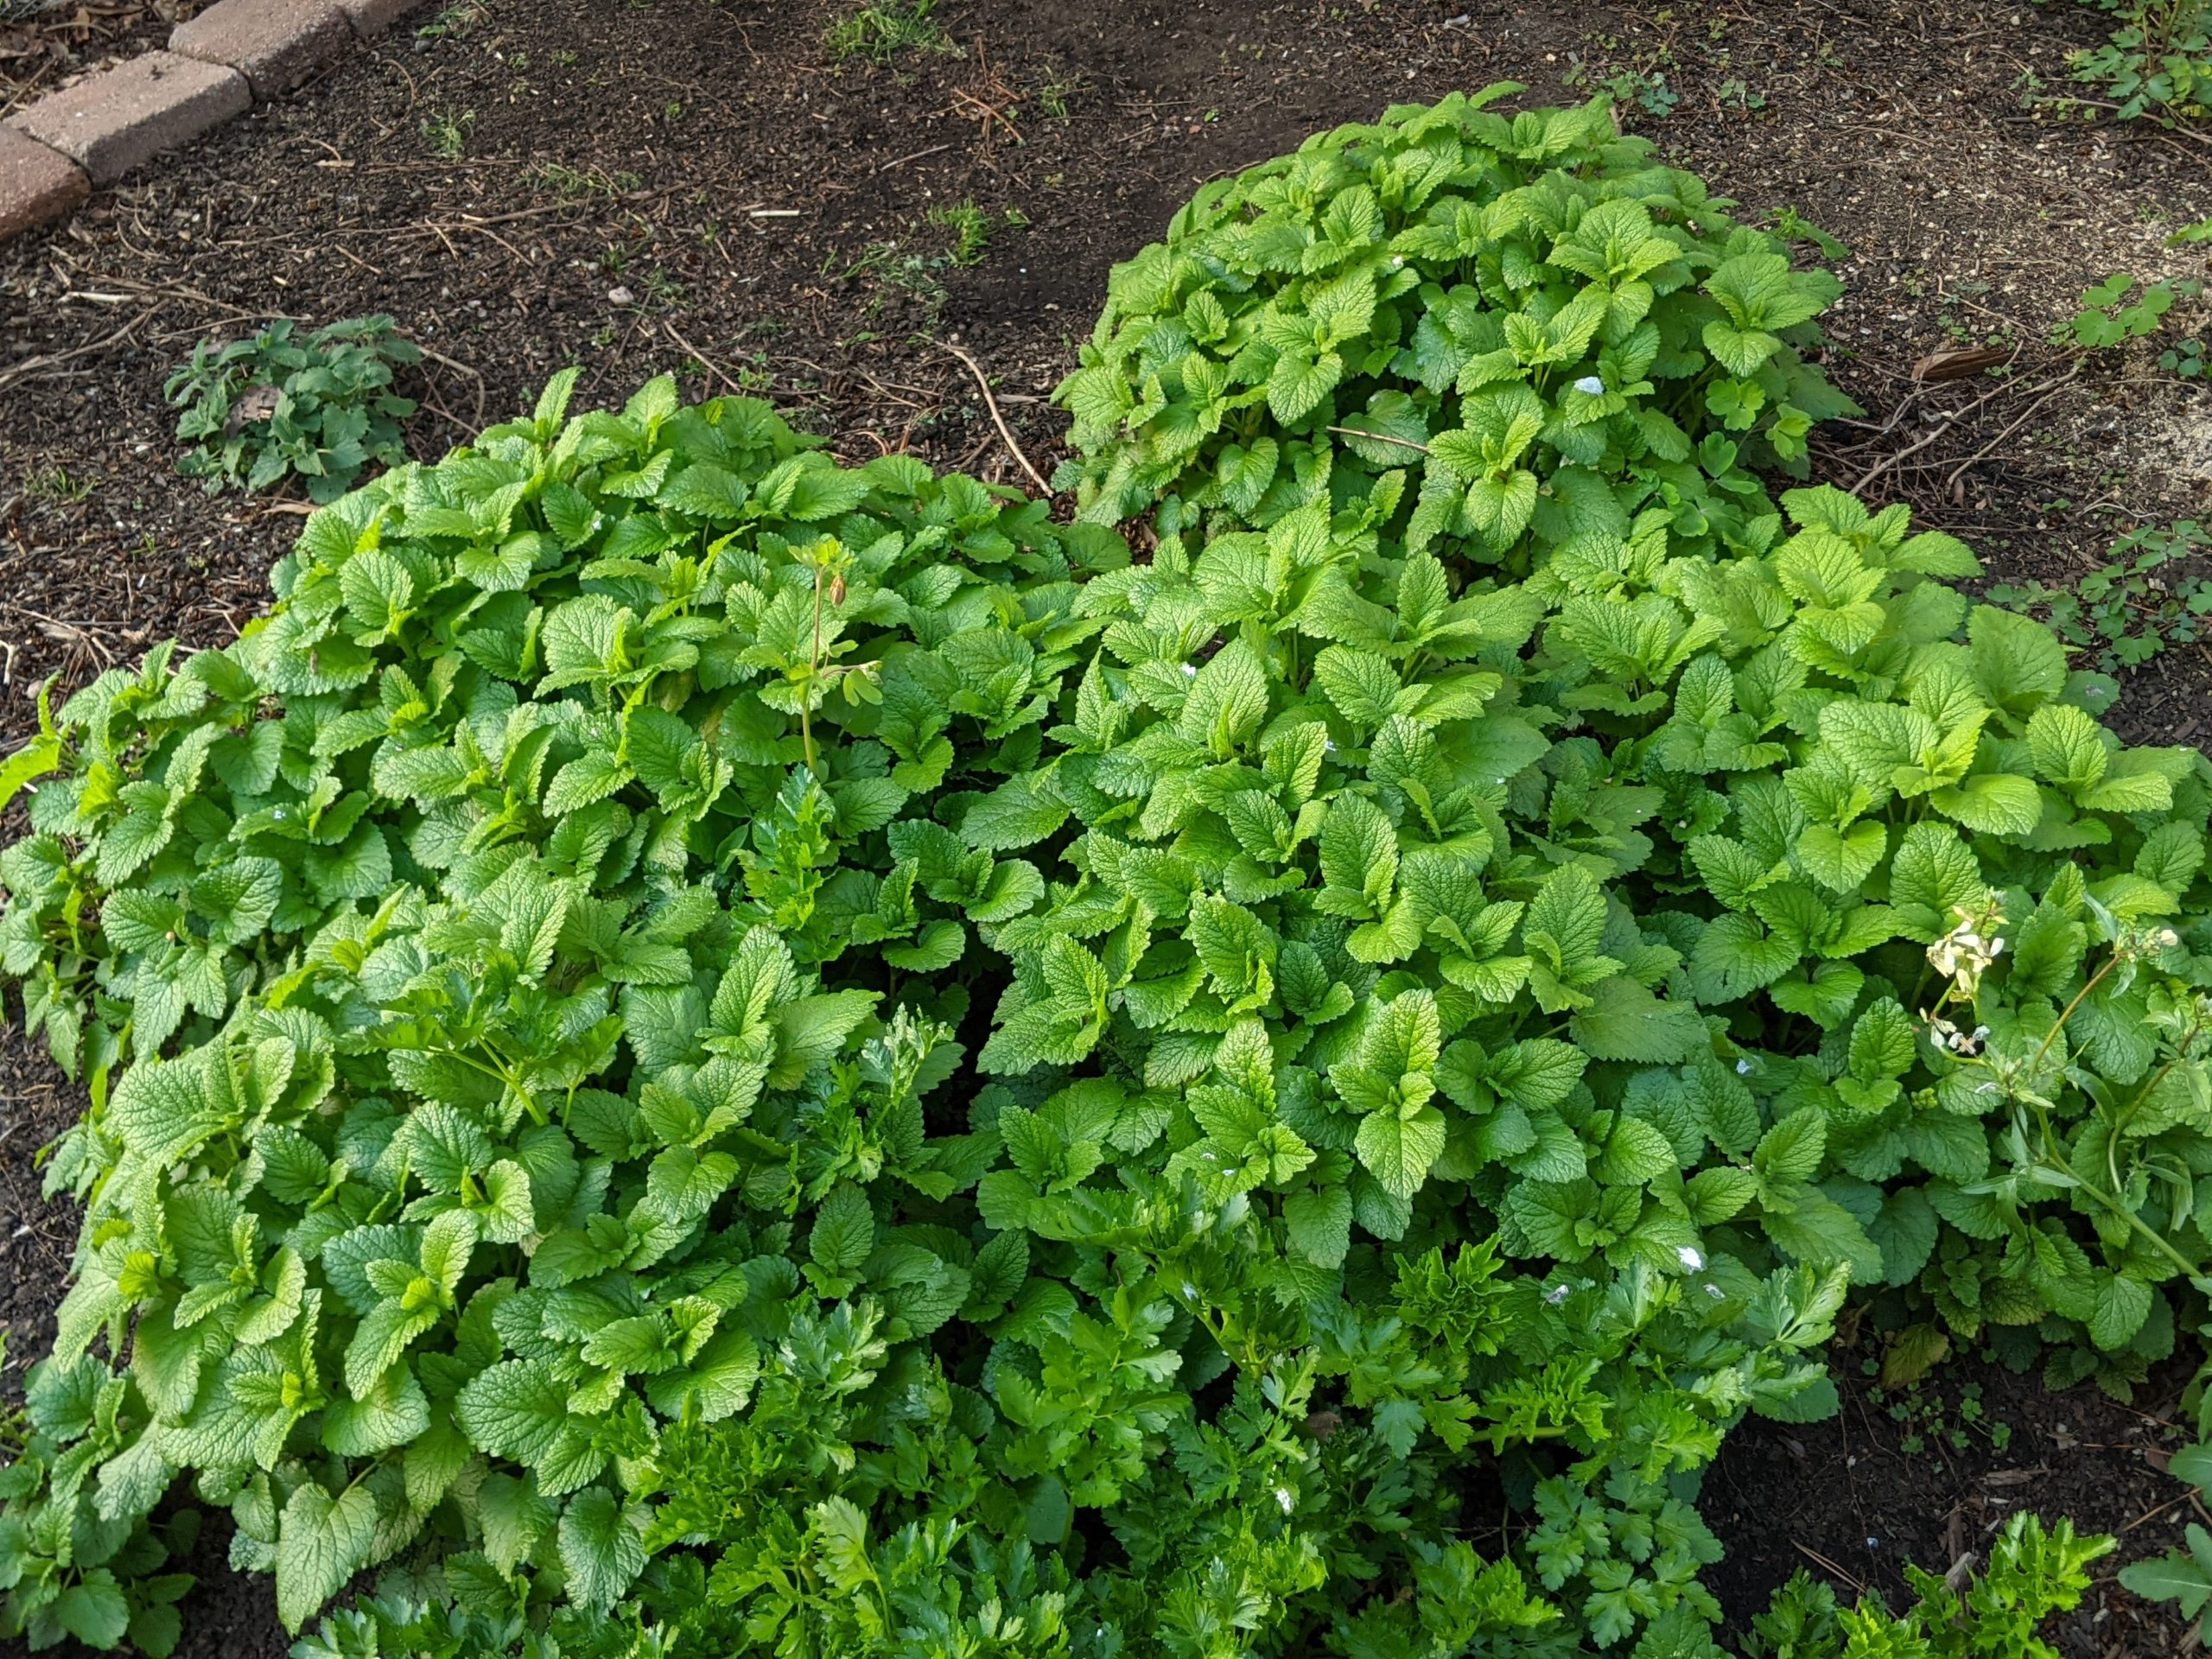 Another relative of mint, lemon balm is really filling in, maybe too much so. Some parsley is mixed in near the bottom, too, which is handy to have. No more wasted, wilty bunches from the grocery store!